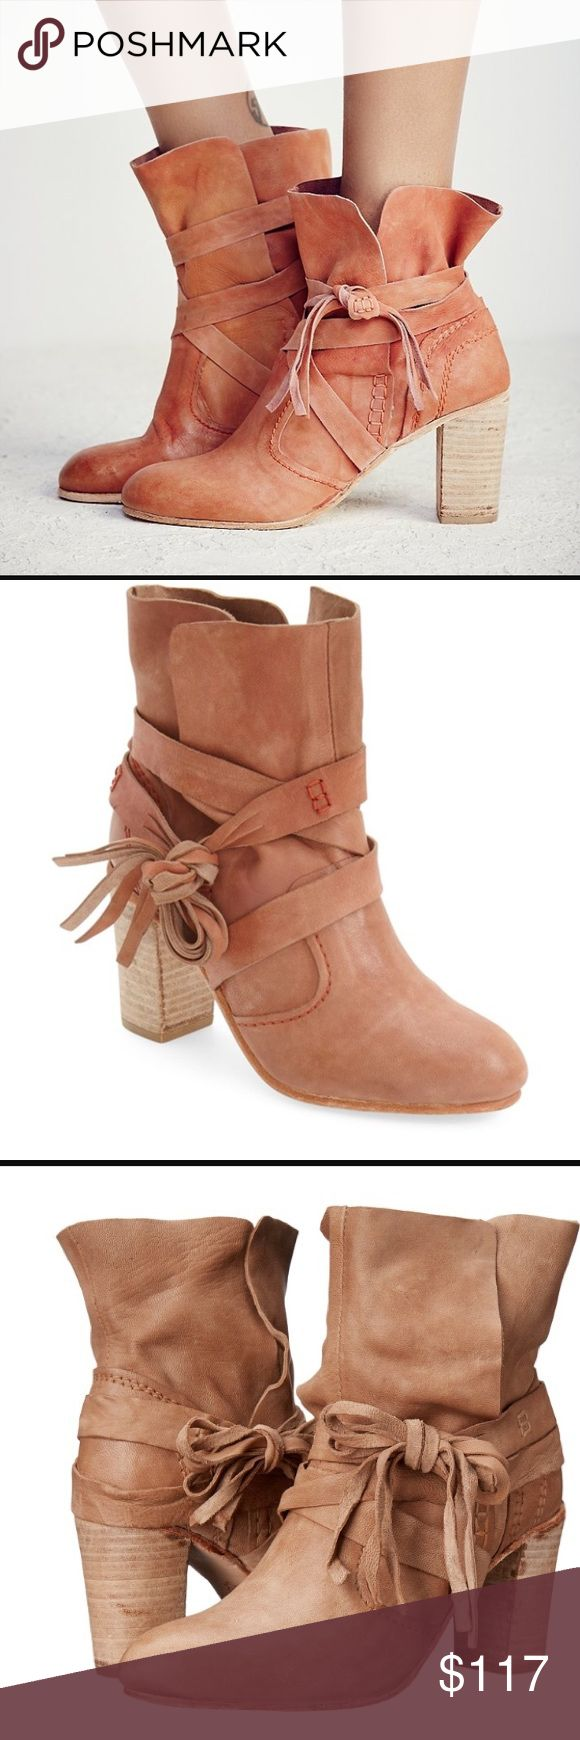 Free People seven wonders heel boots brick. Sz 8 Sold out in stores. Bought these after stopping someone on the street who was wearing them. They are ridiculous. I get so many compliments, but they run a tad small so I find I don't wear as often.                             🚫Bundles Free People Shoes Heeled Boots